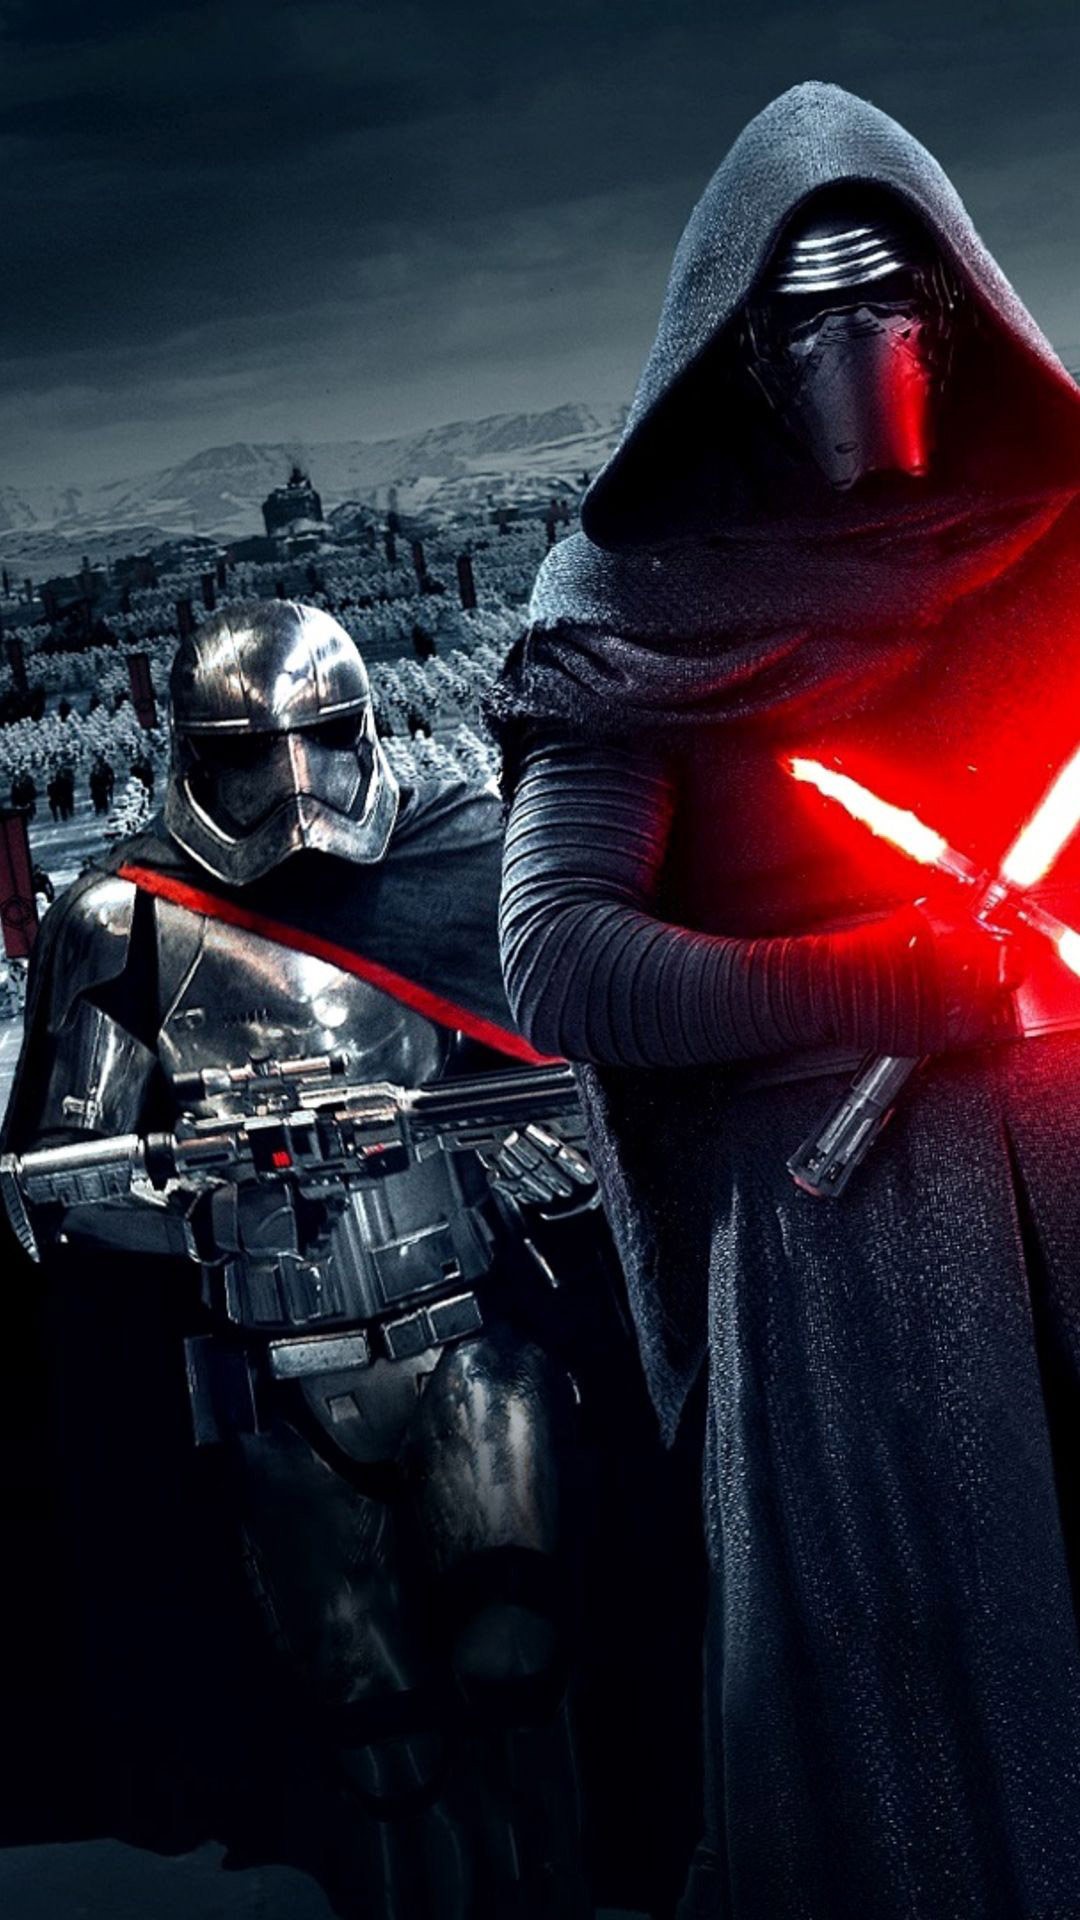 Star-Wars-The-Force-Awakens-Wallpaper-Kylo-Ren-Captain-Phasma